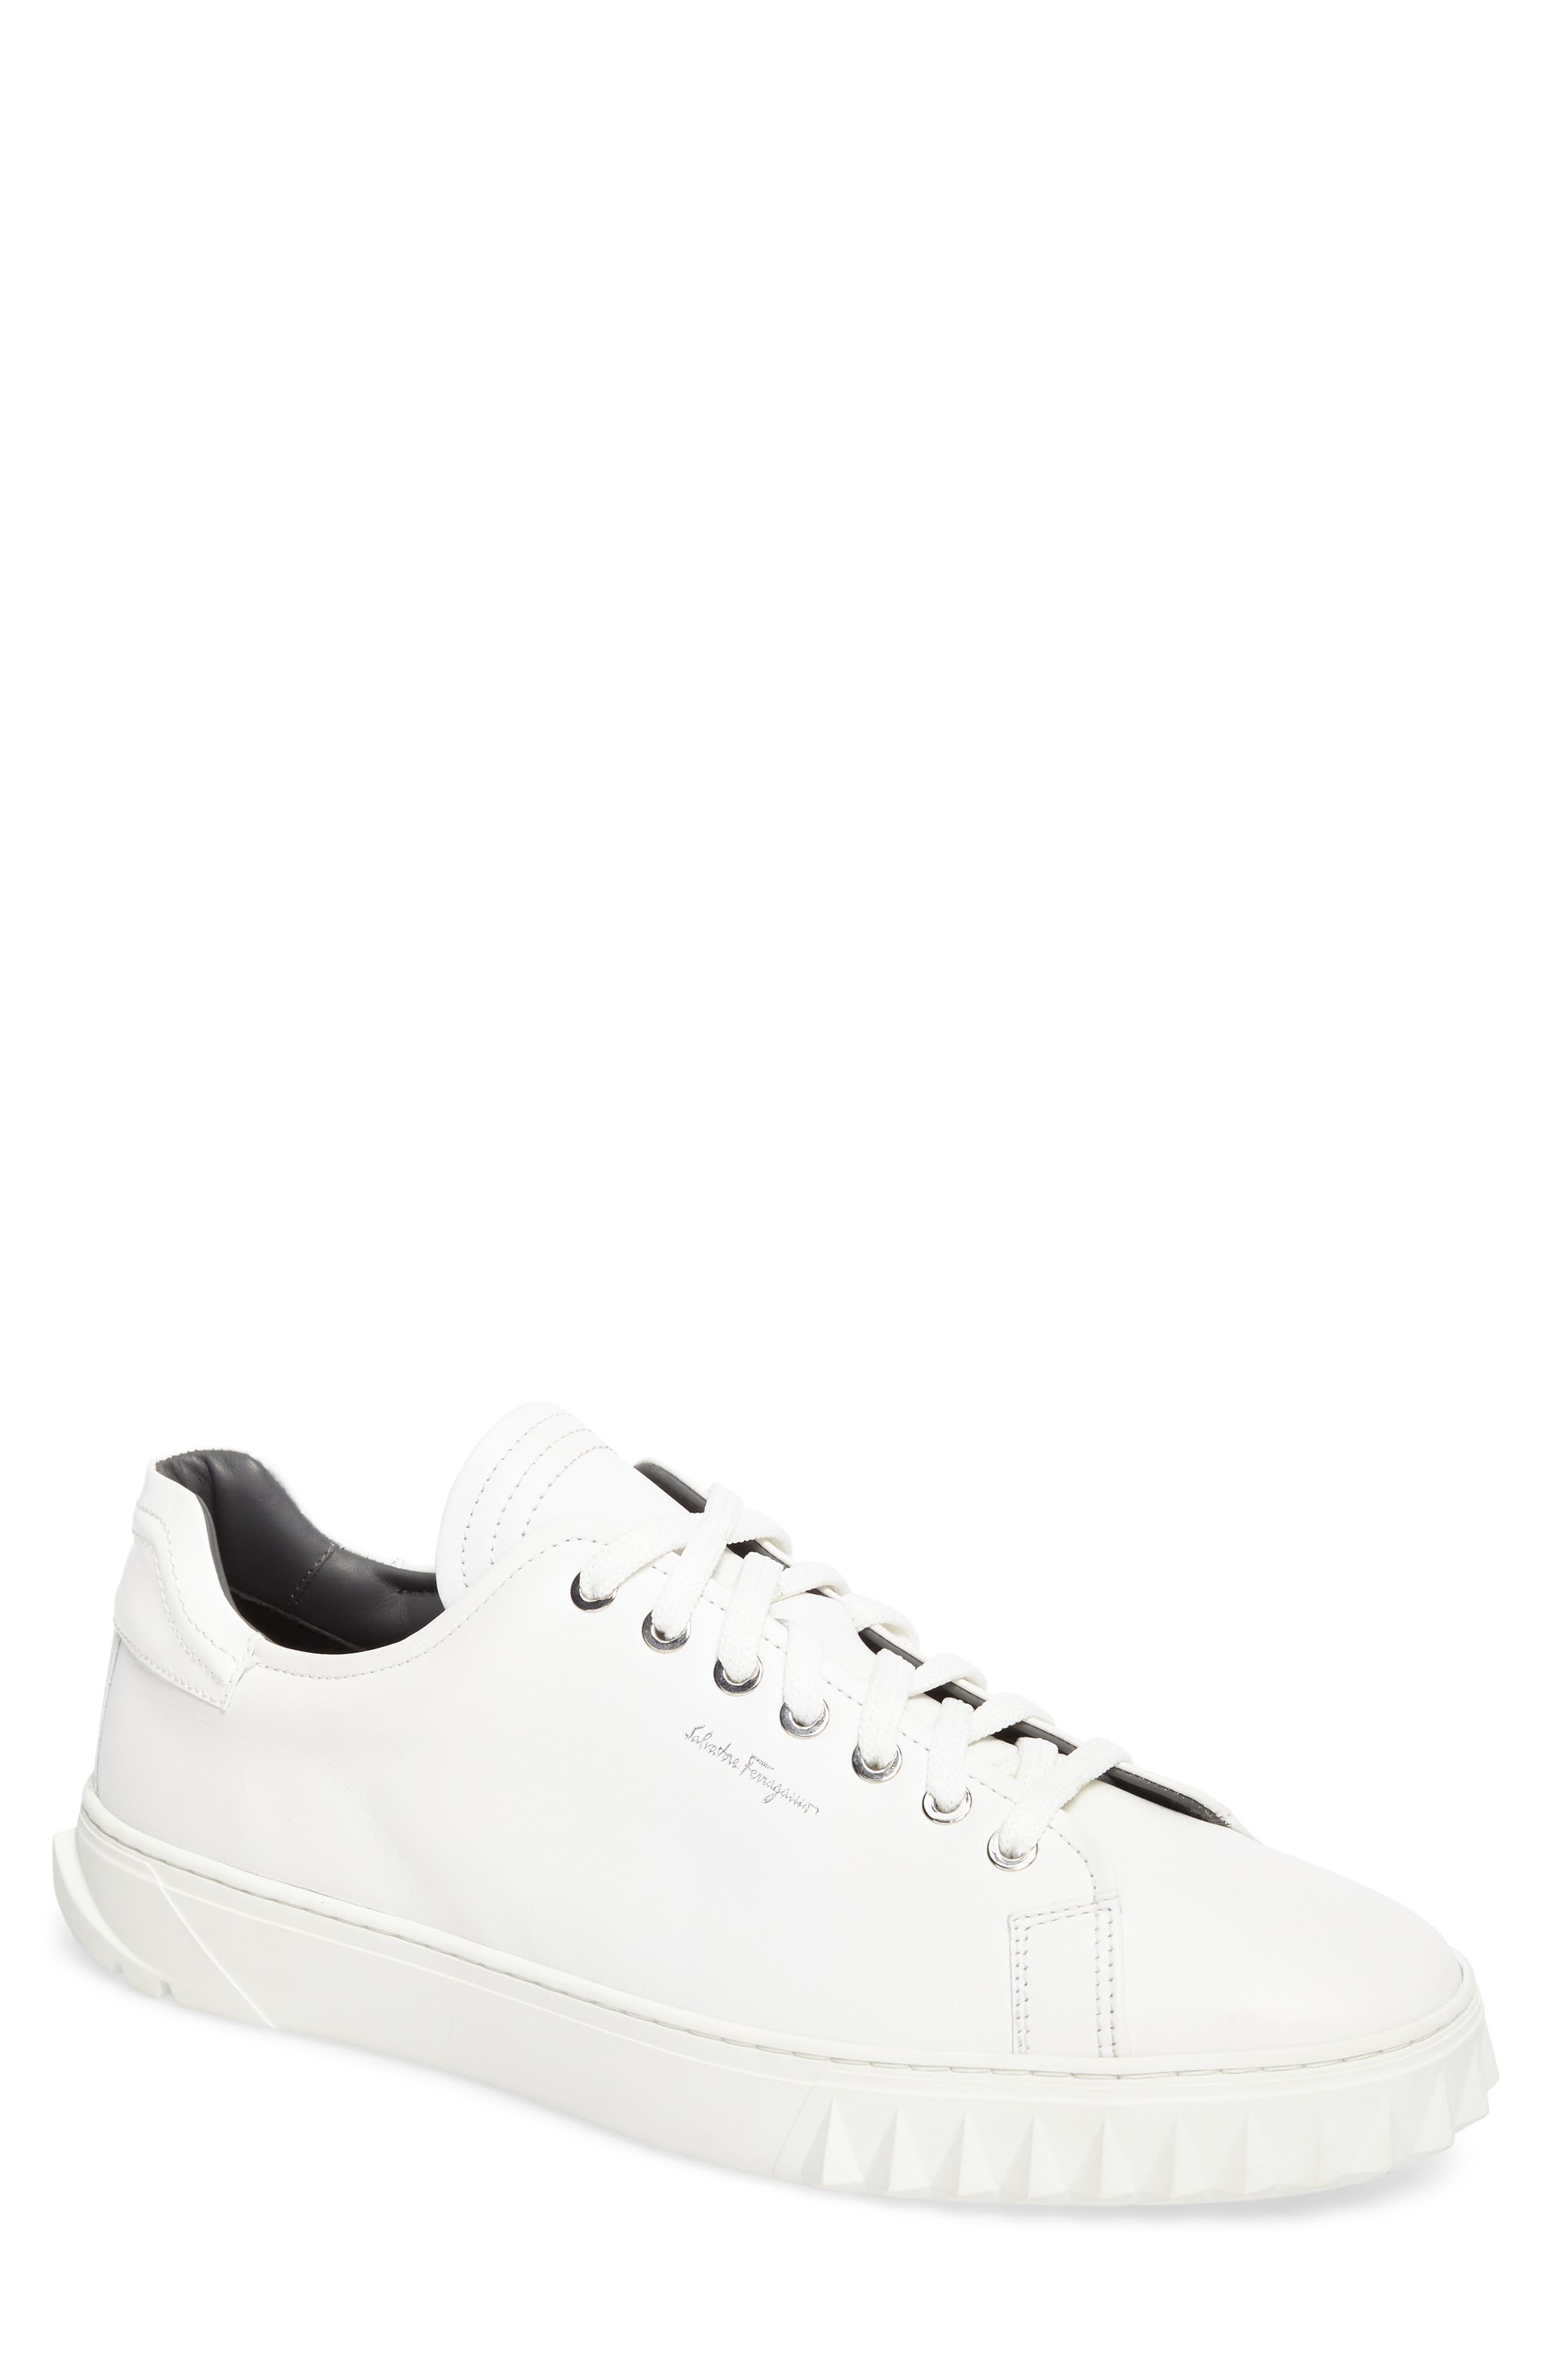 Cube Sneaker,                         Main,                         color, BIANCO